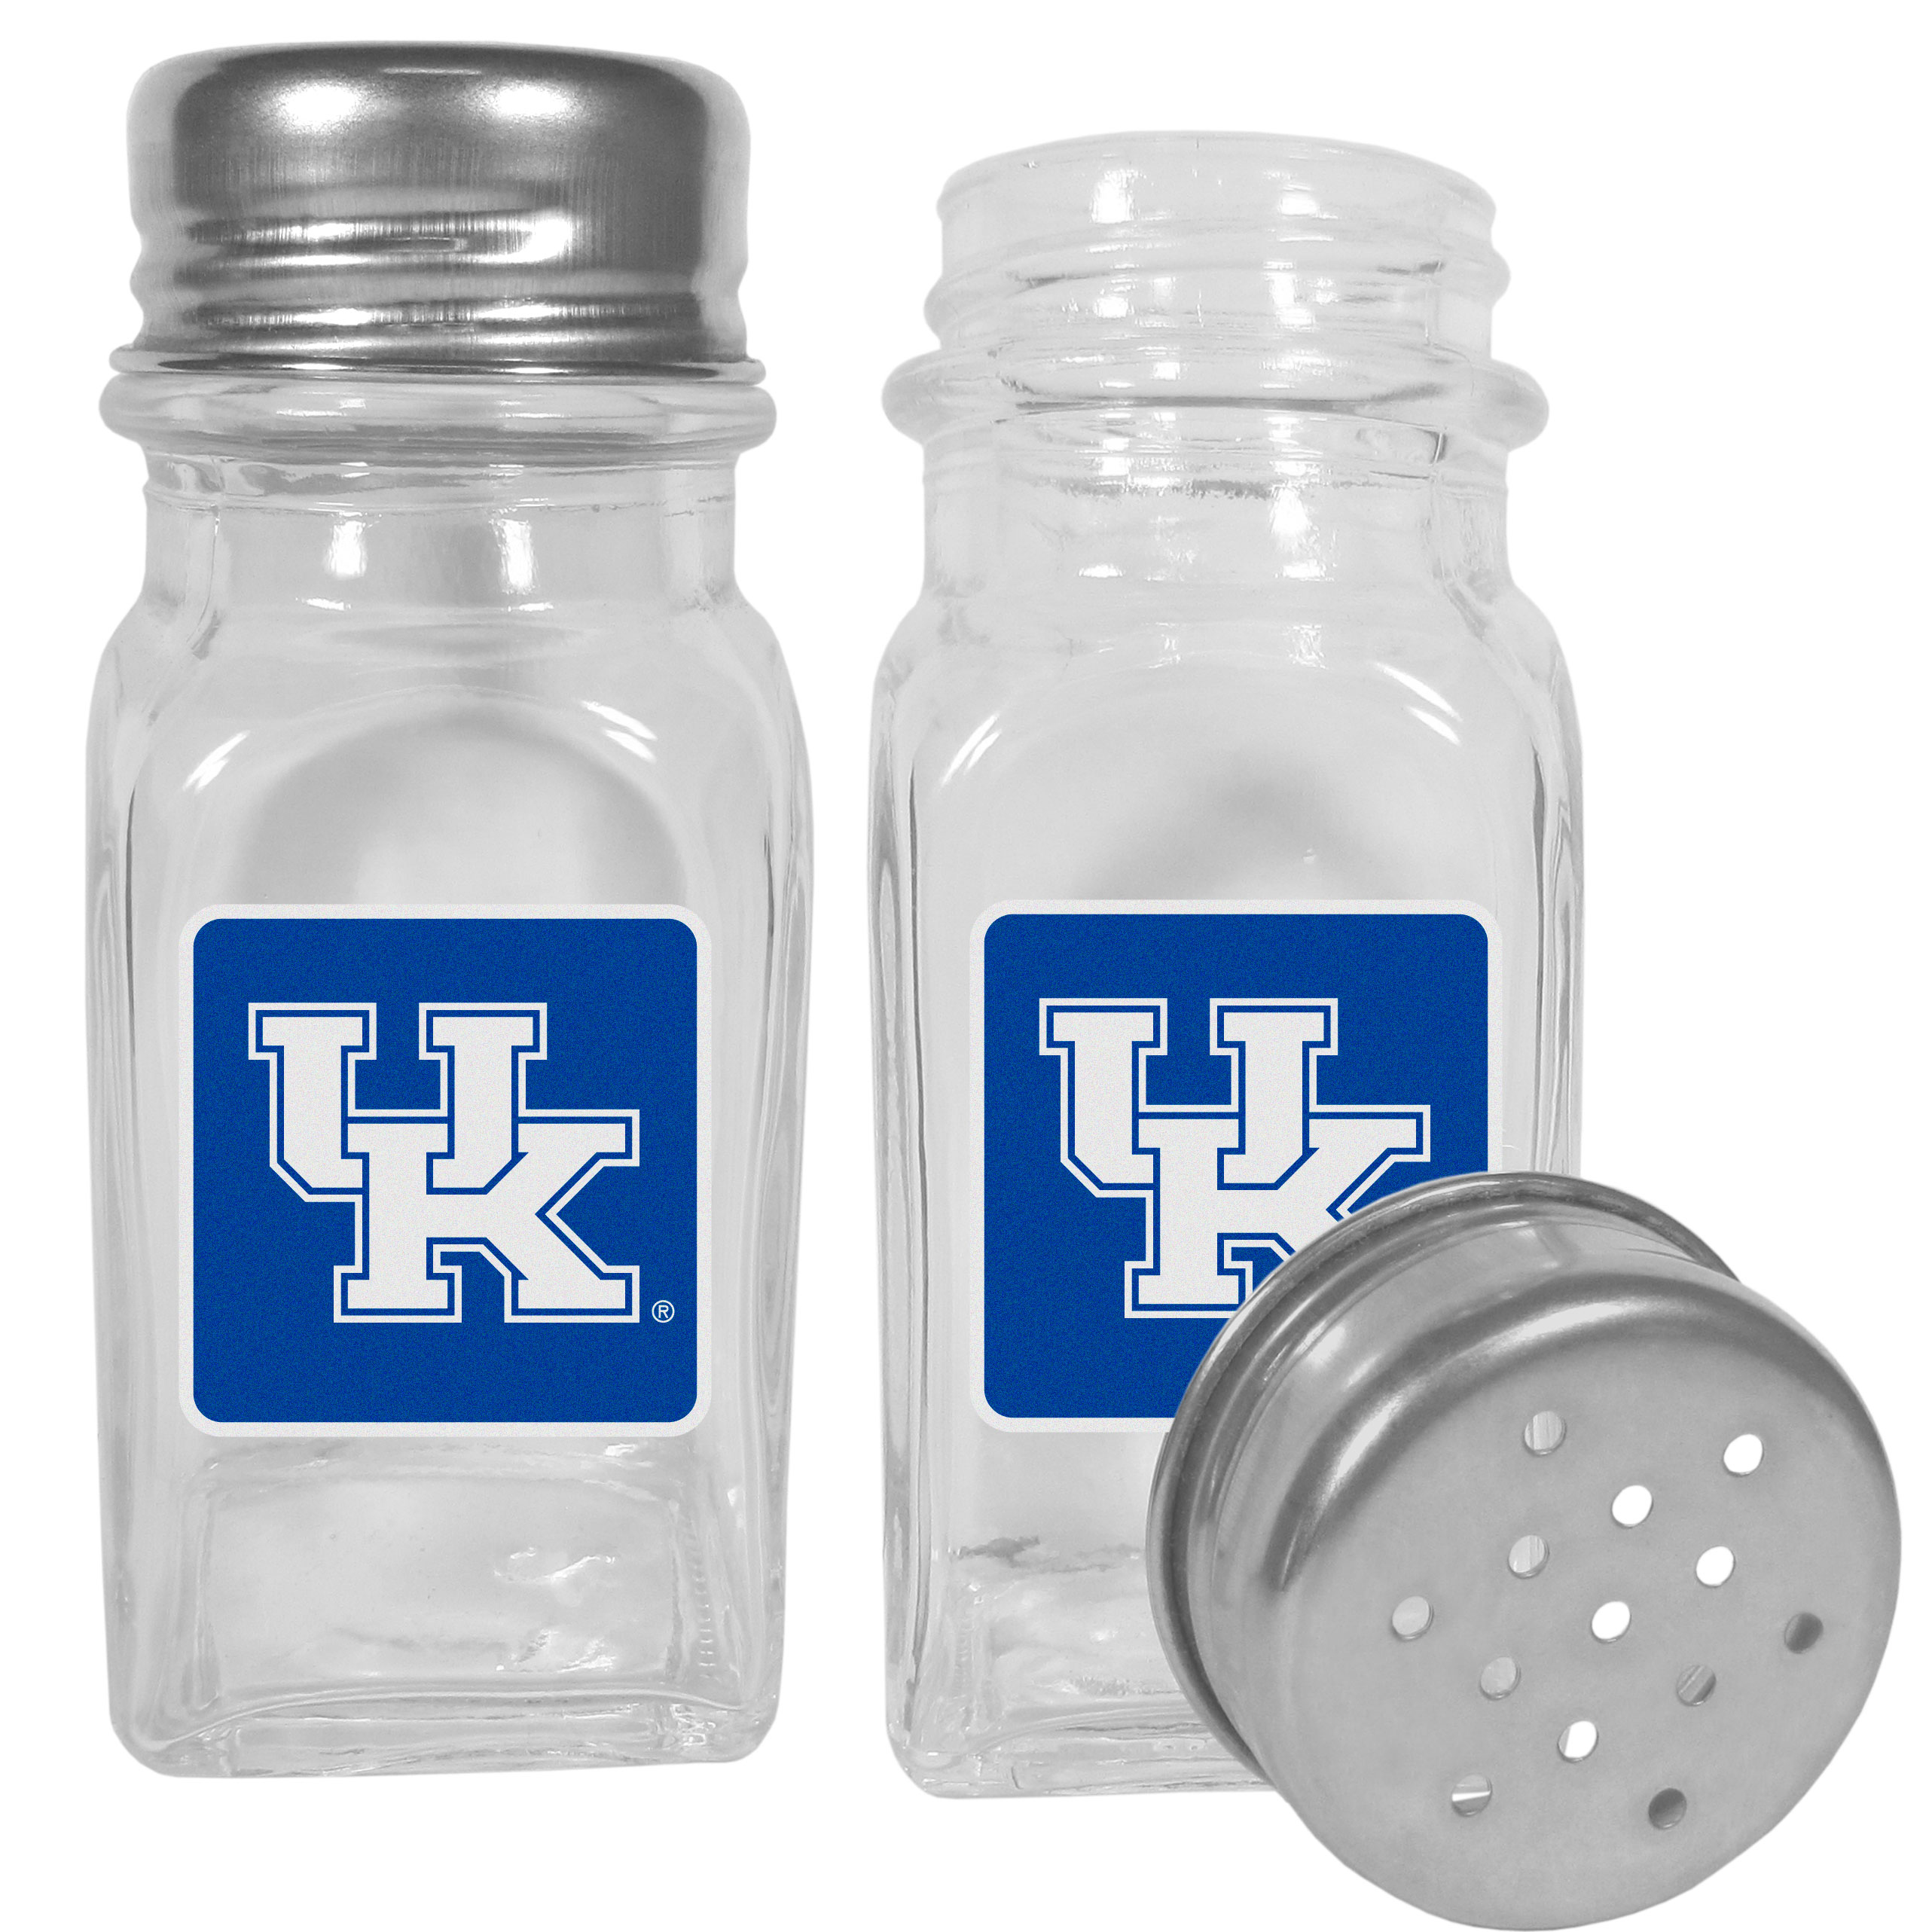 Kentucky Wildcats Graphics Salt and Pepper Shaker - No tailgate party is complete without your Kentucky Wildcats salt & pepper shakers featuring bright team logos. The diner replica salt and pepper shakers are glass with screw top lids. These team shakers are a great grill accessory whether you are barbecuing on the patio, picnicing or having a game day party.